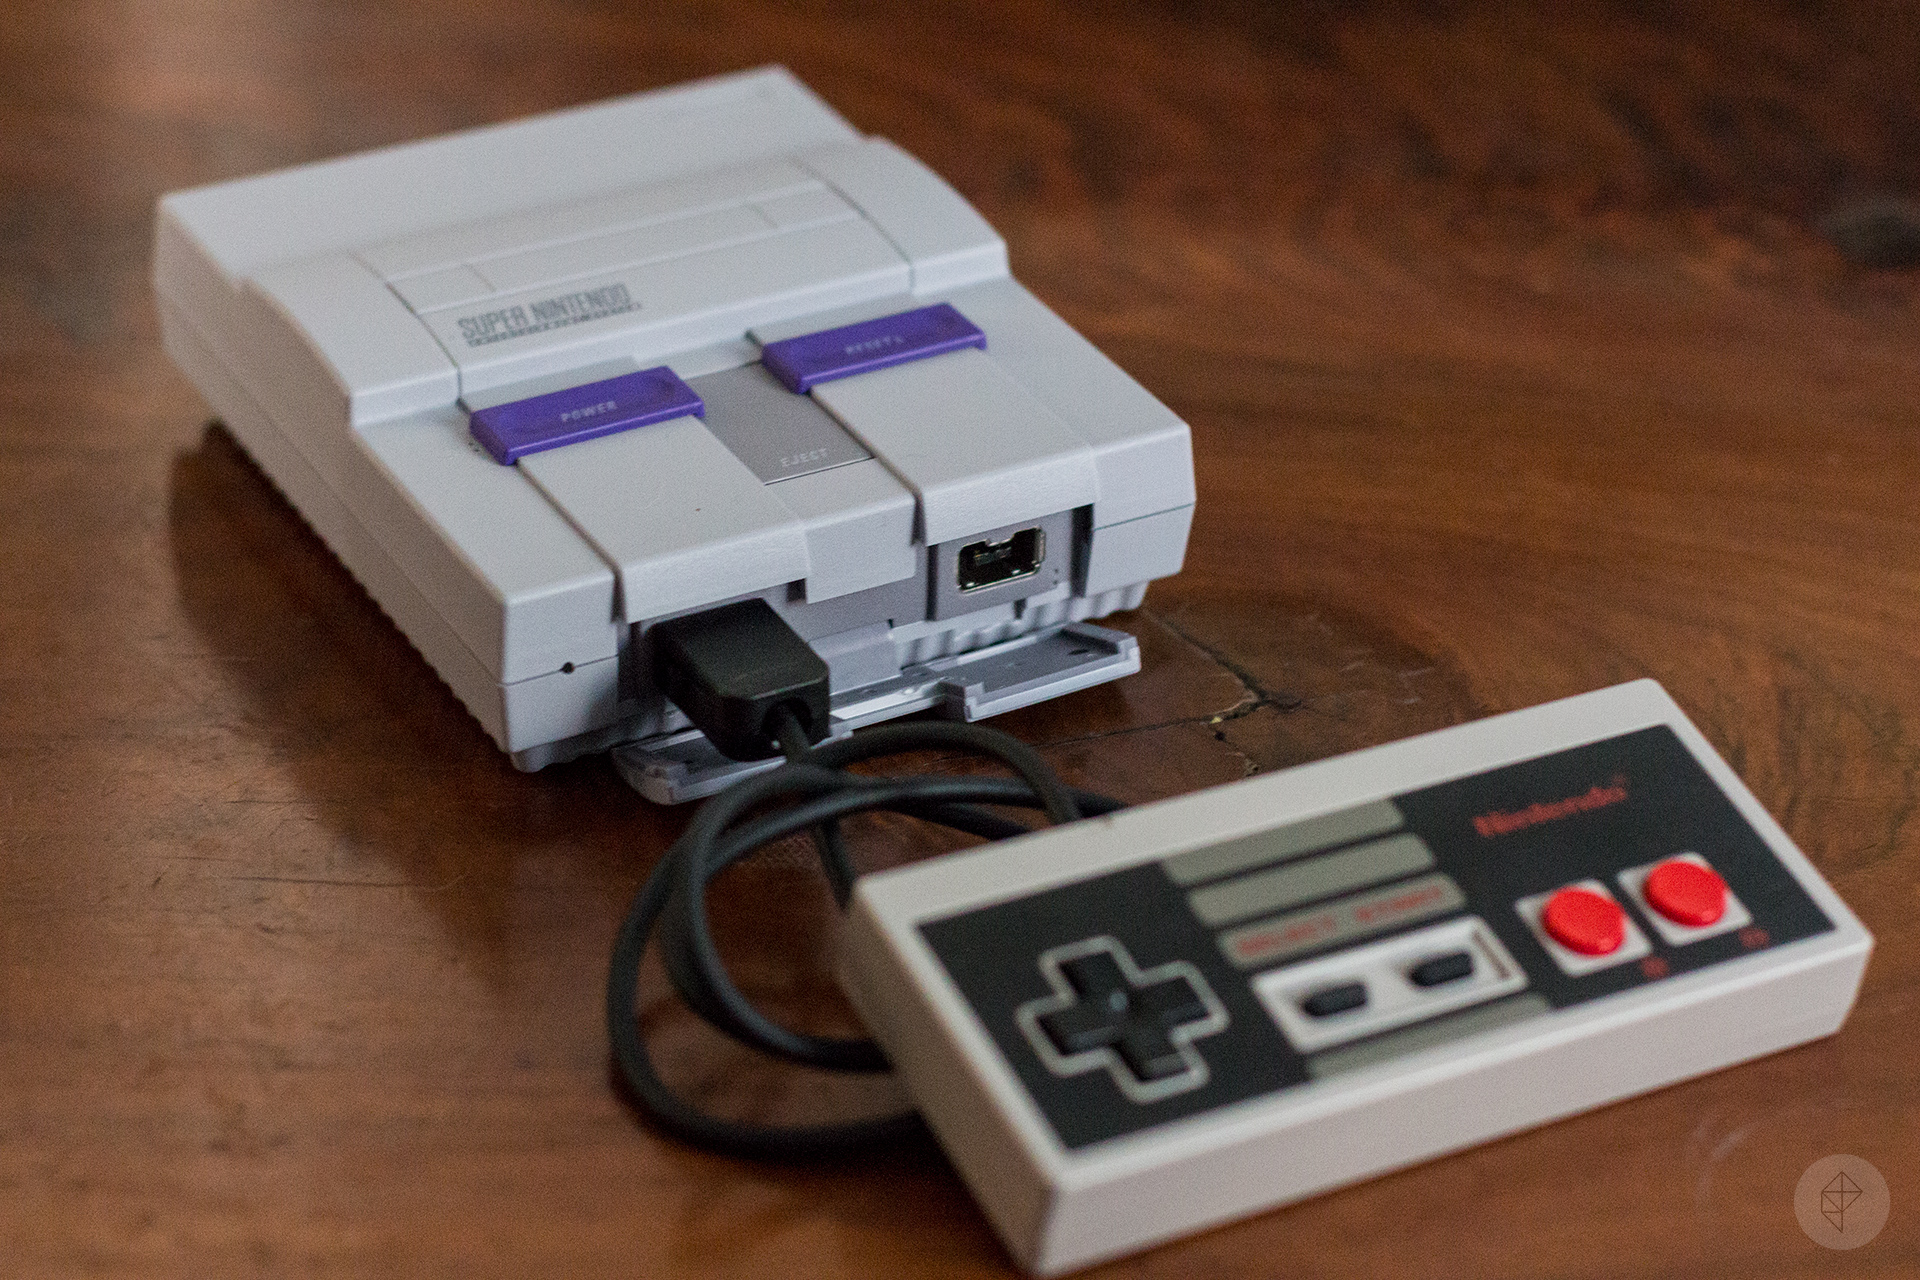 hight resolution of snes classic controllers work with nes classic and vice versa